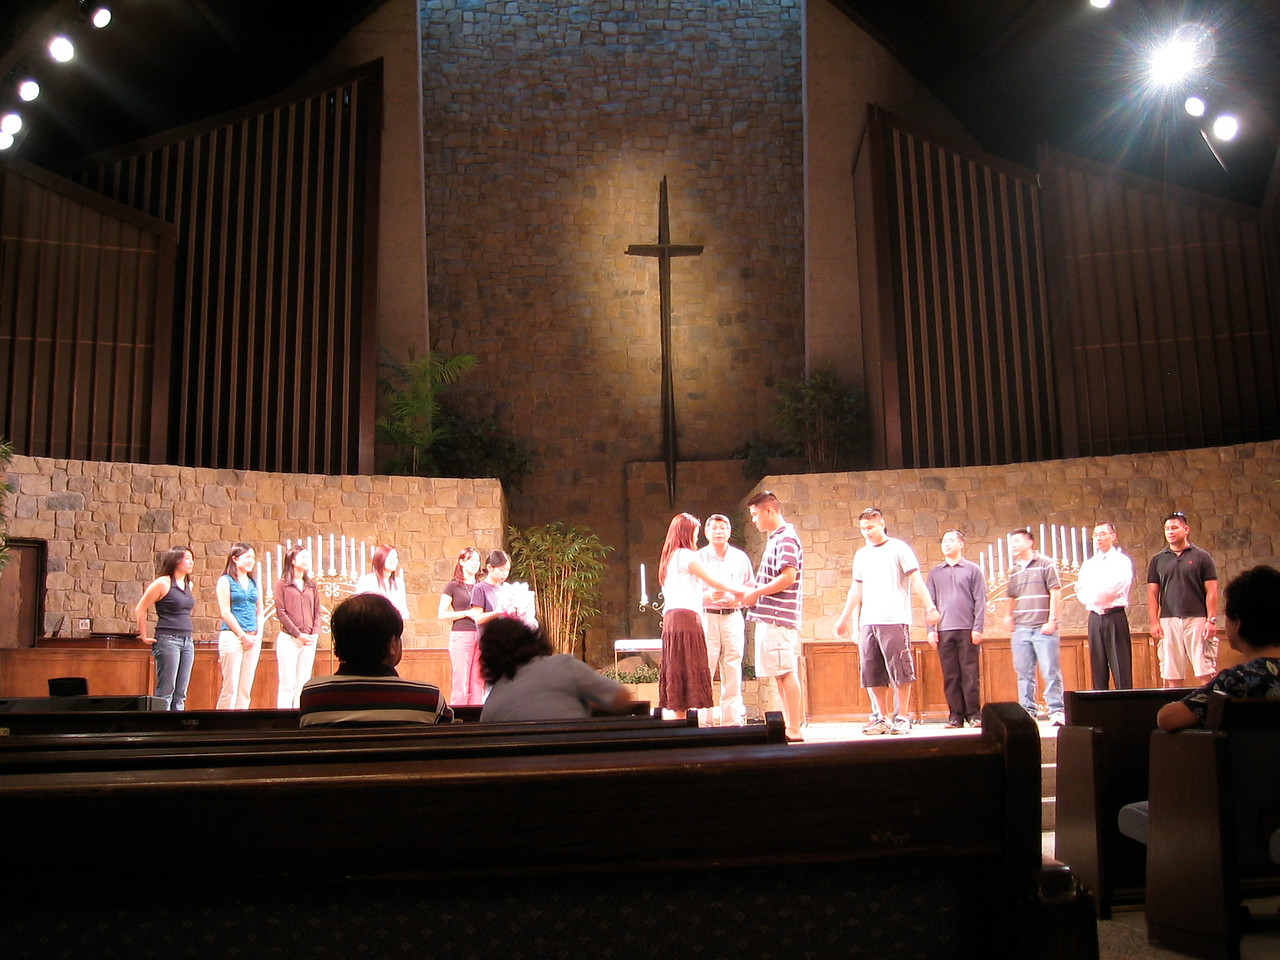 Rehearsal - Exchange of vows